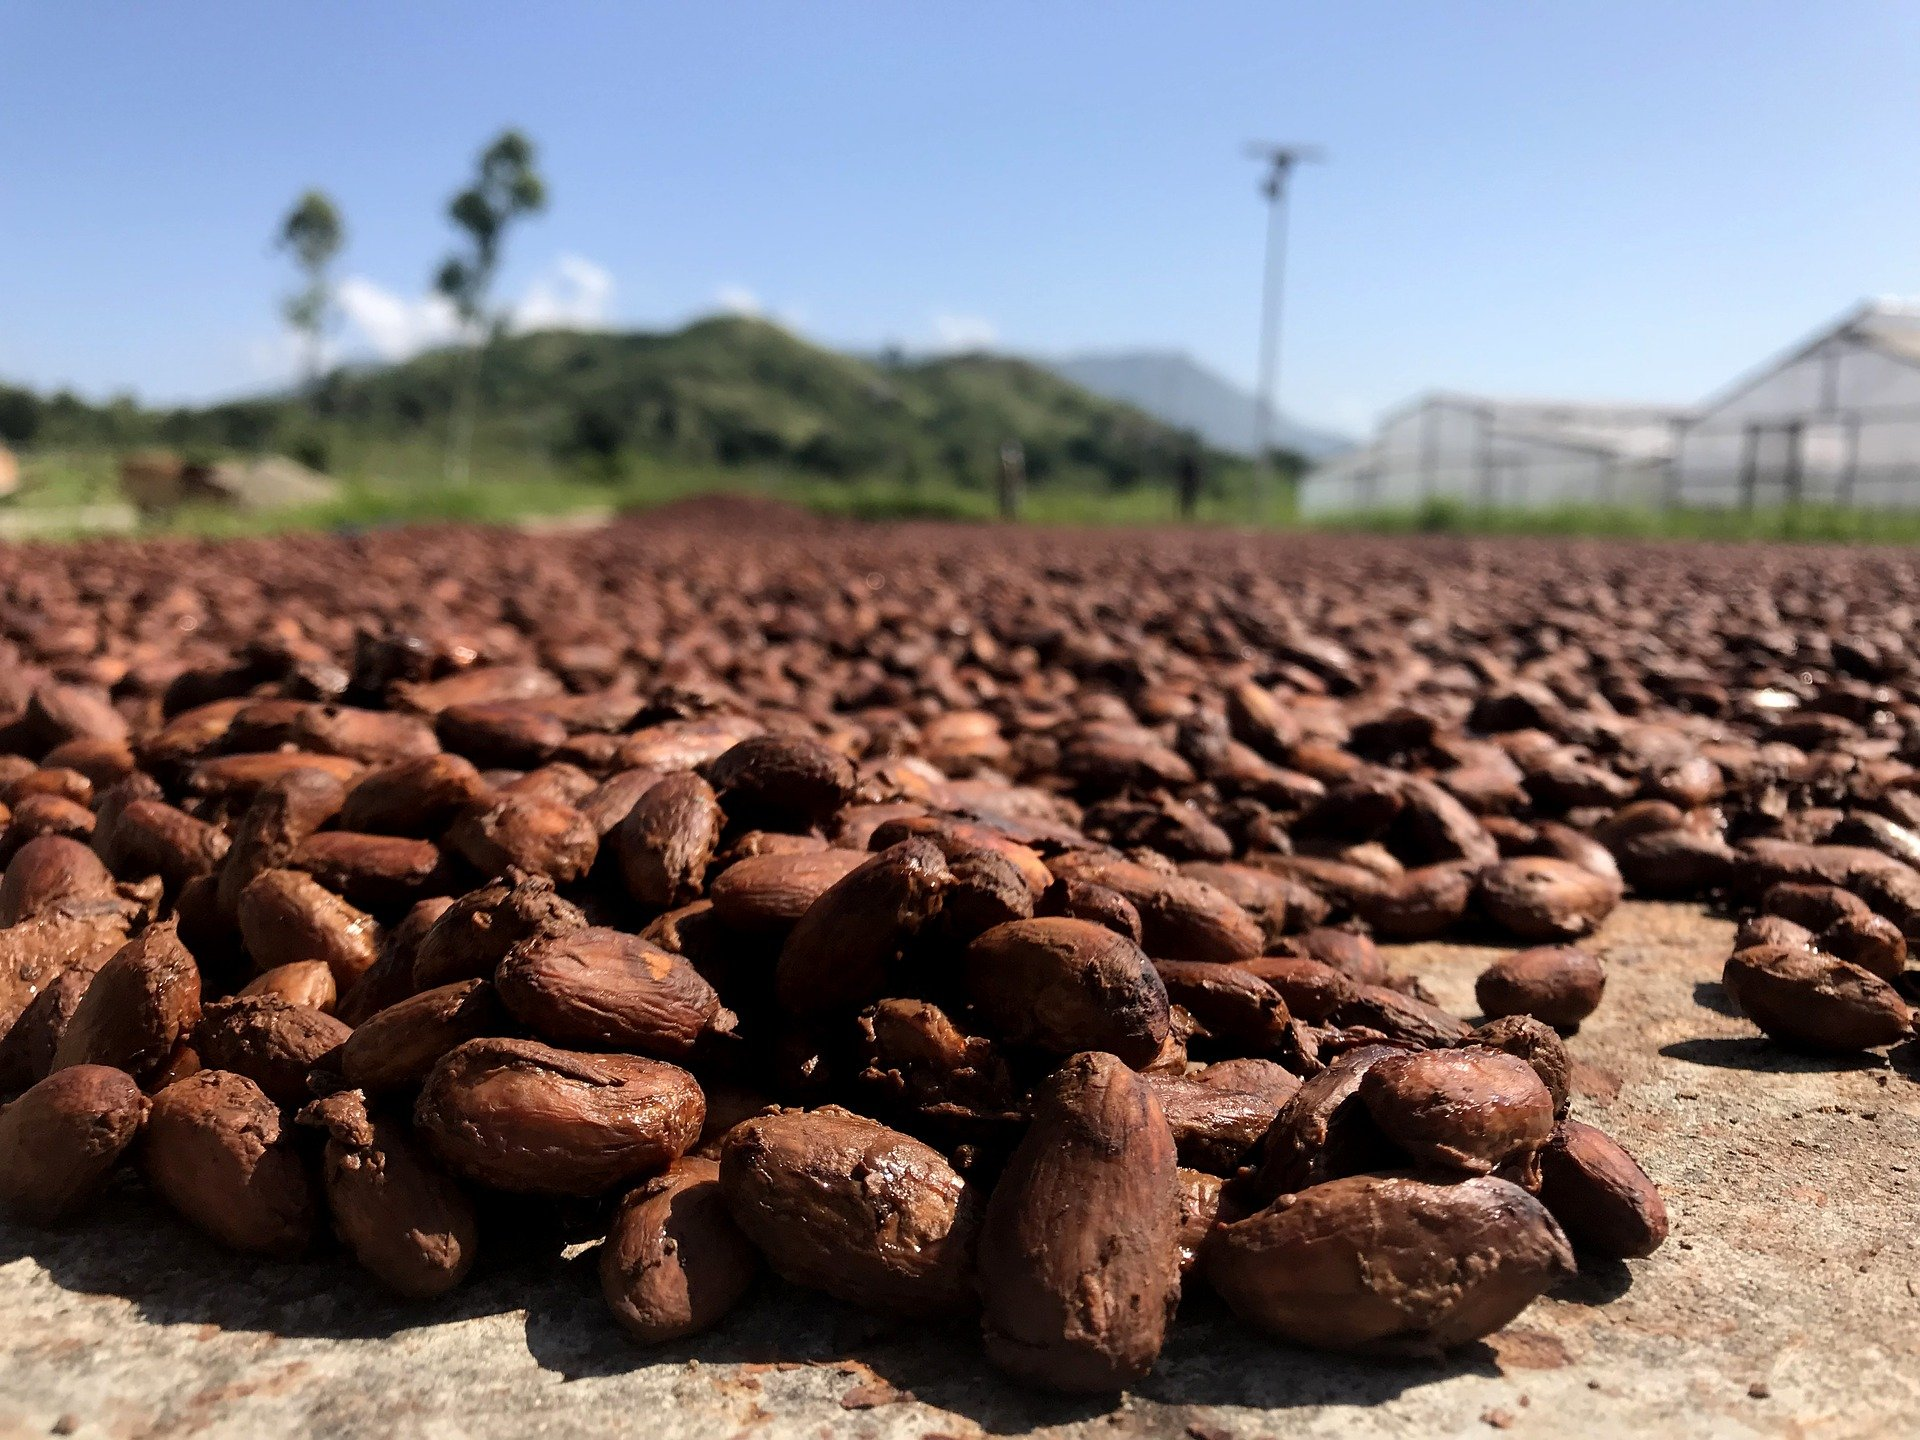 Mondelēz and Olam team up to create world's largest sustainable cocoa farm